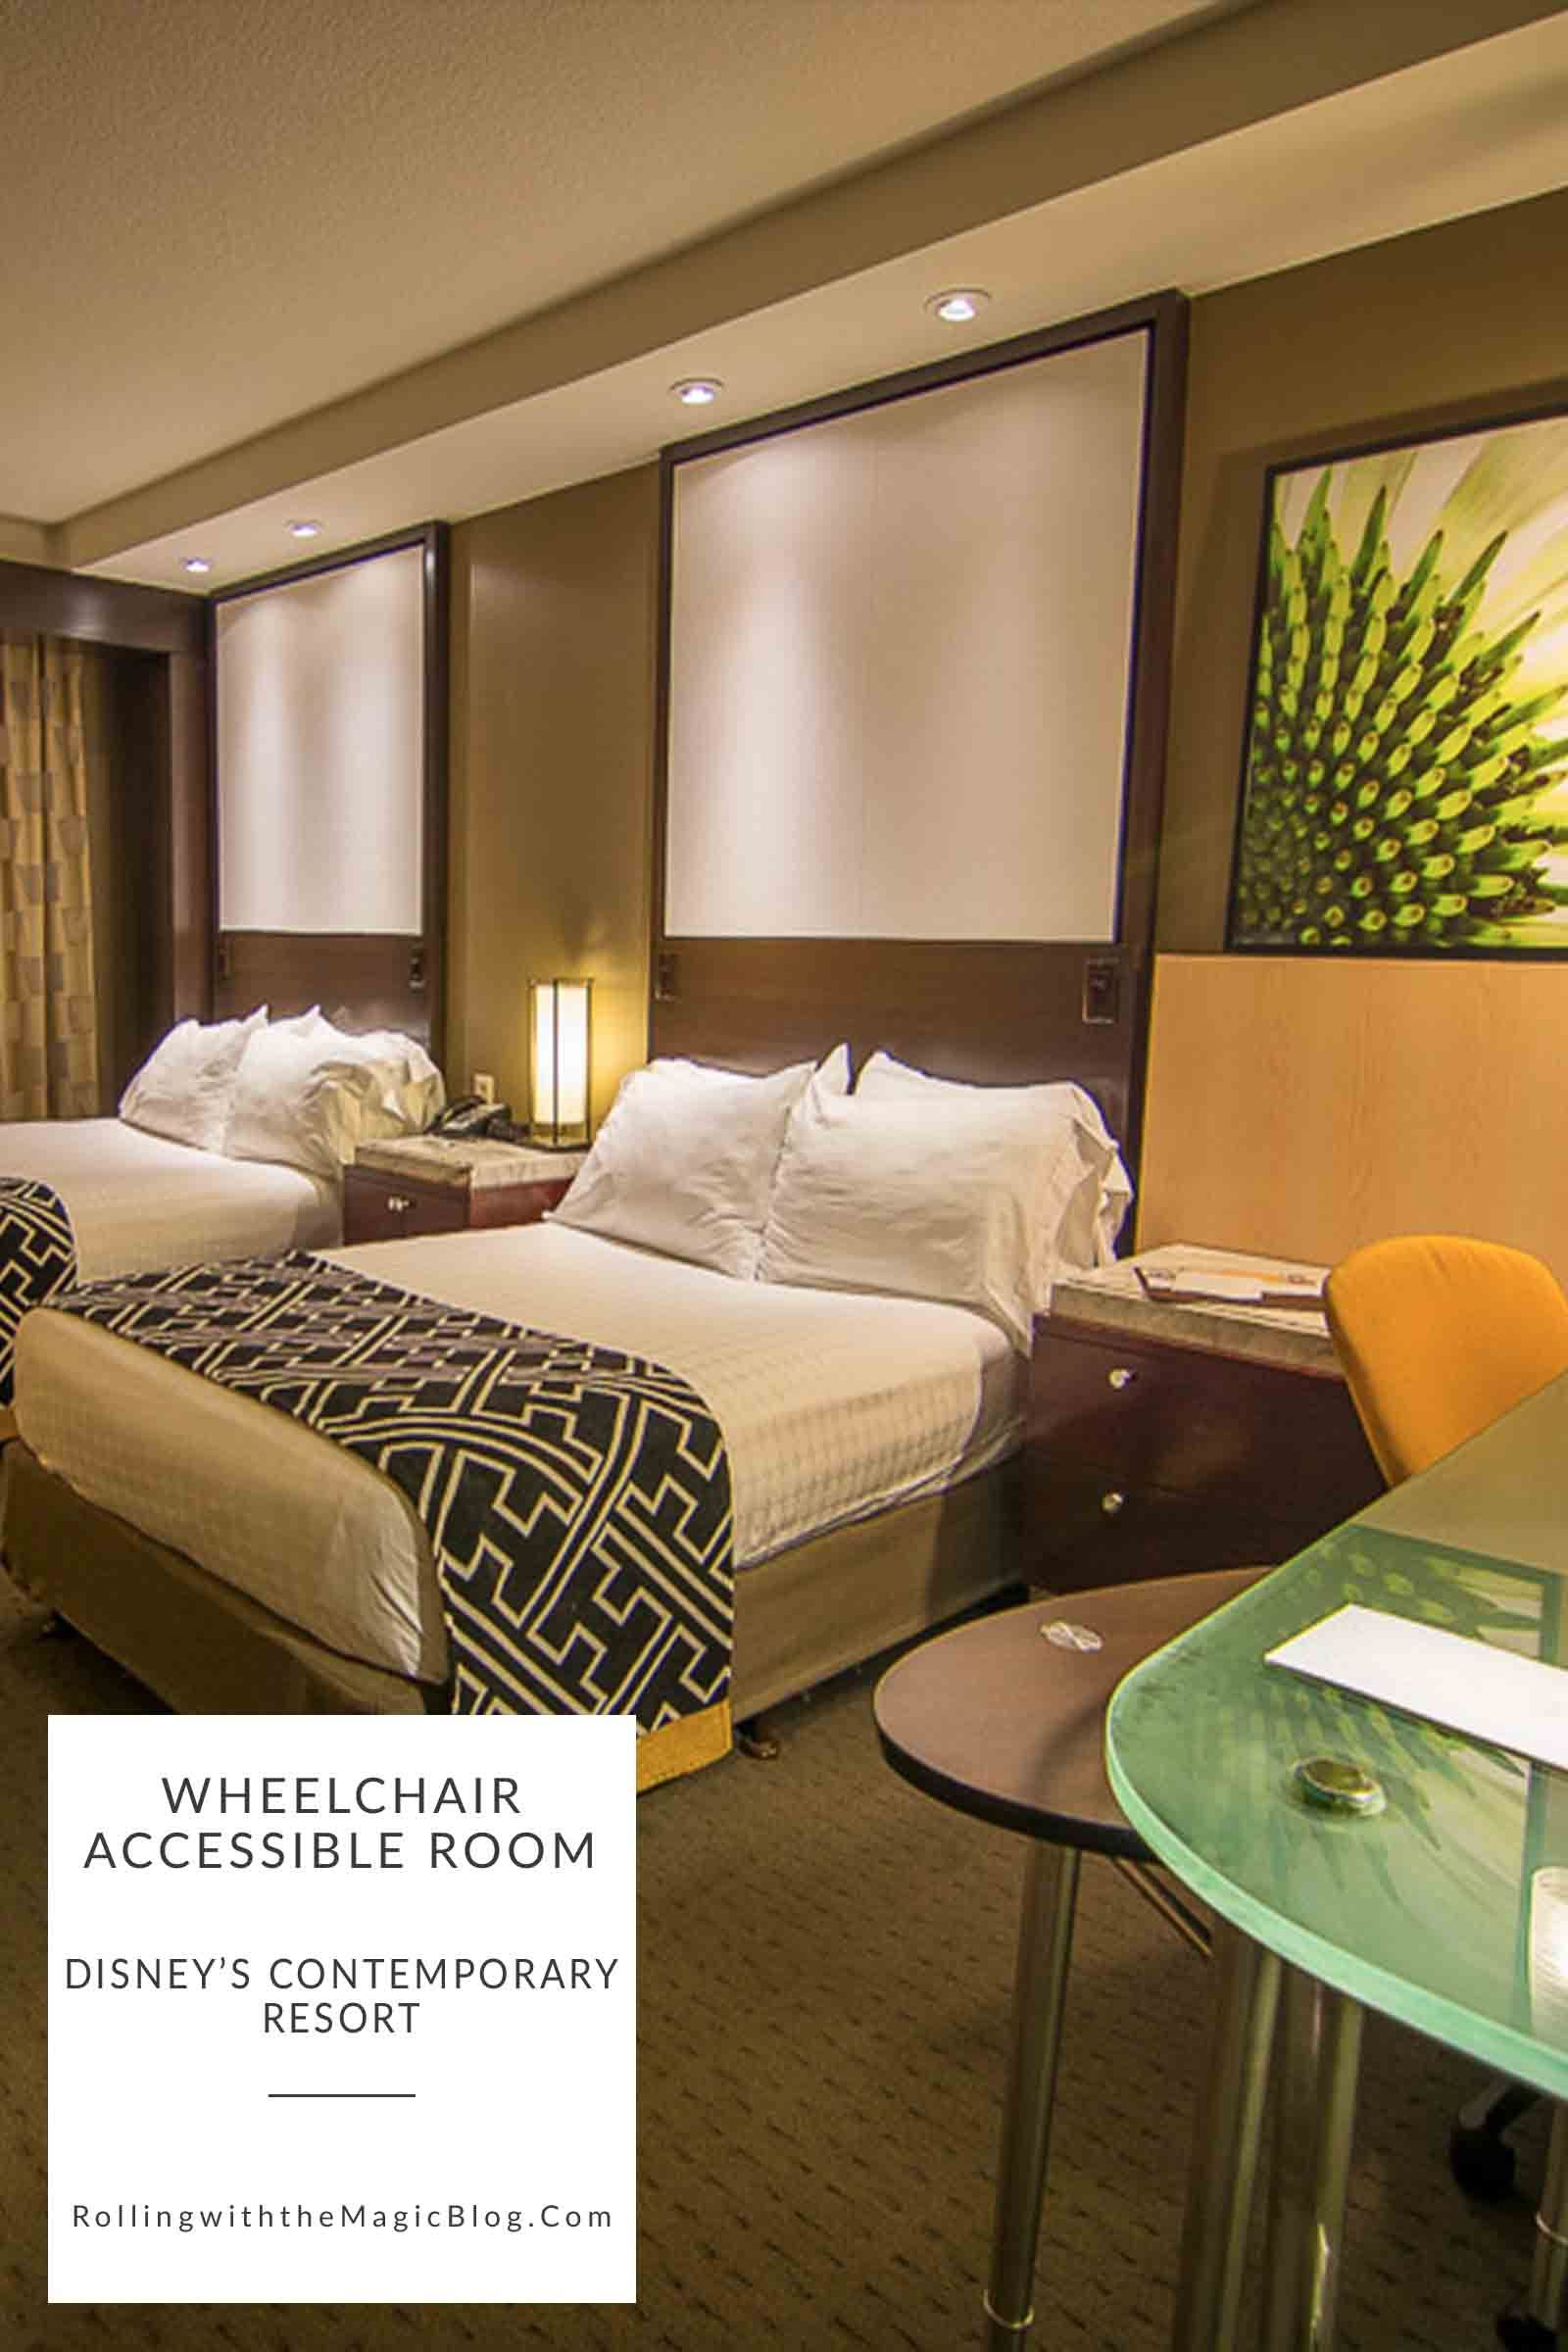 Contemporary Hotel Rooms: Wheelchair Accessible Room At Disney's Contemporary Resort